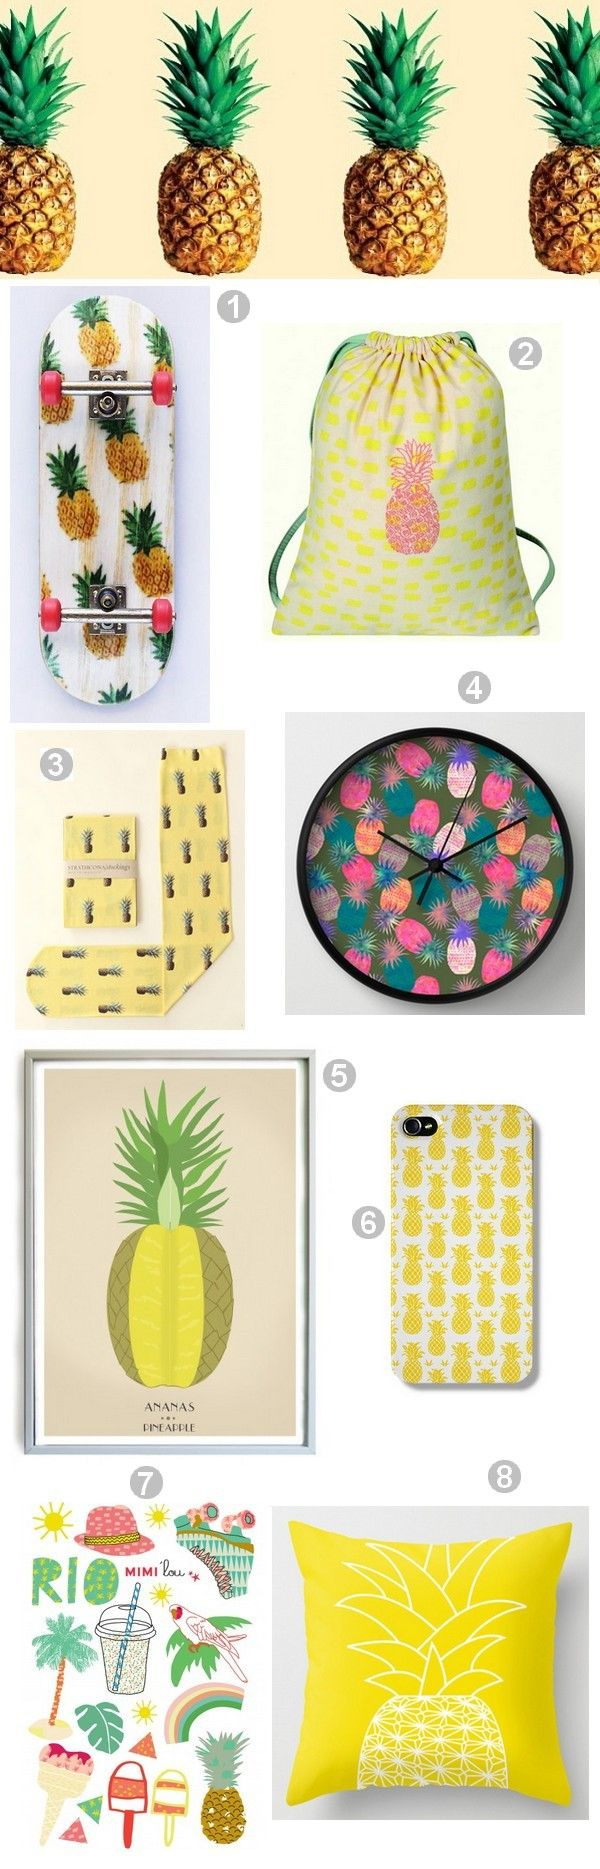 1- Skate Ananas 2- Sac à dos/Sac à goûter Ananas by Mimi'Lou 3- Chaussettes imprimées Ananas by Strathcona 4- Horloge Pina colada by Schatzi Brown 5- Affiche Vintage ananas by French Blossom 6- Coque de protection iphone Ananas by The Dairy 7- Tatouages éphémères Rio by Mimi'Lou 8- Coussin Ananas by Ramalamb